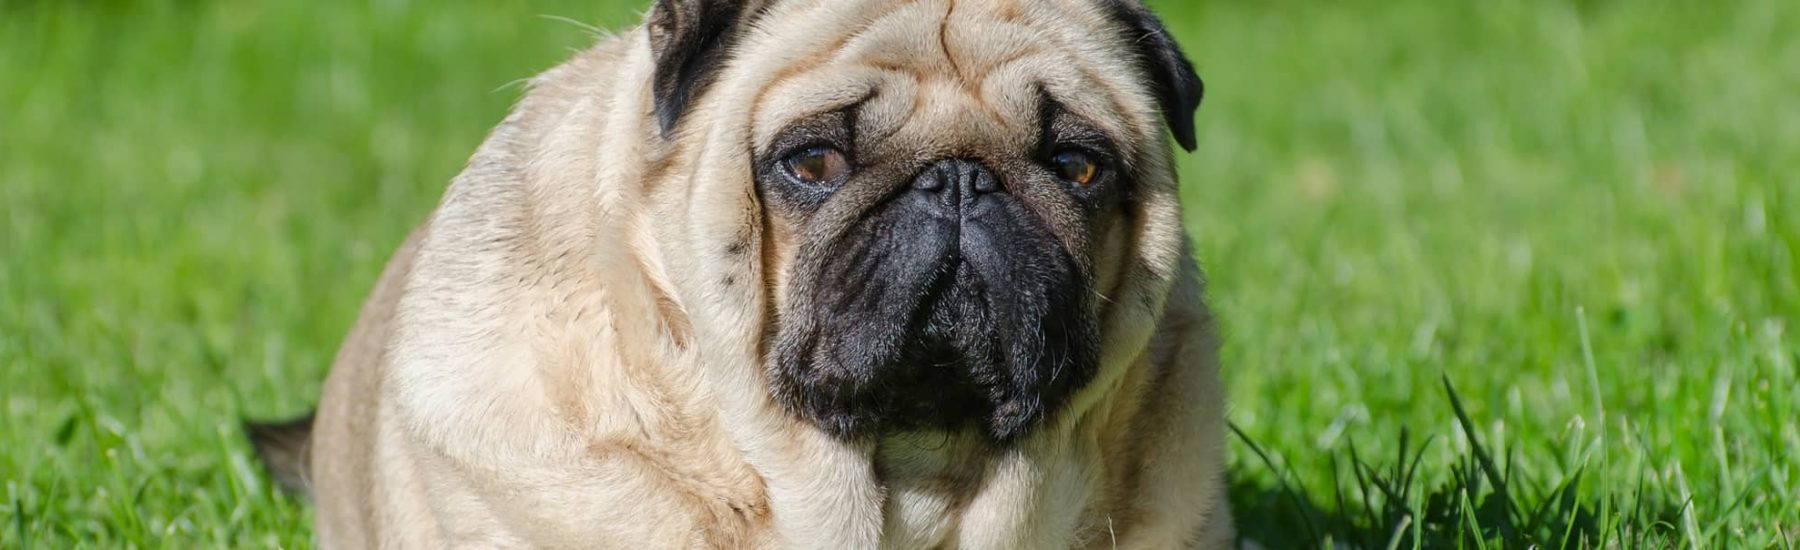 An overweight pug on grass looks into the camera.